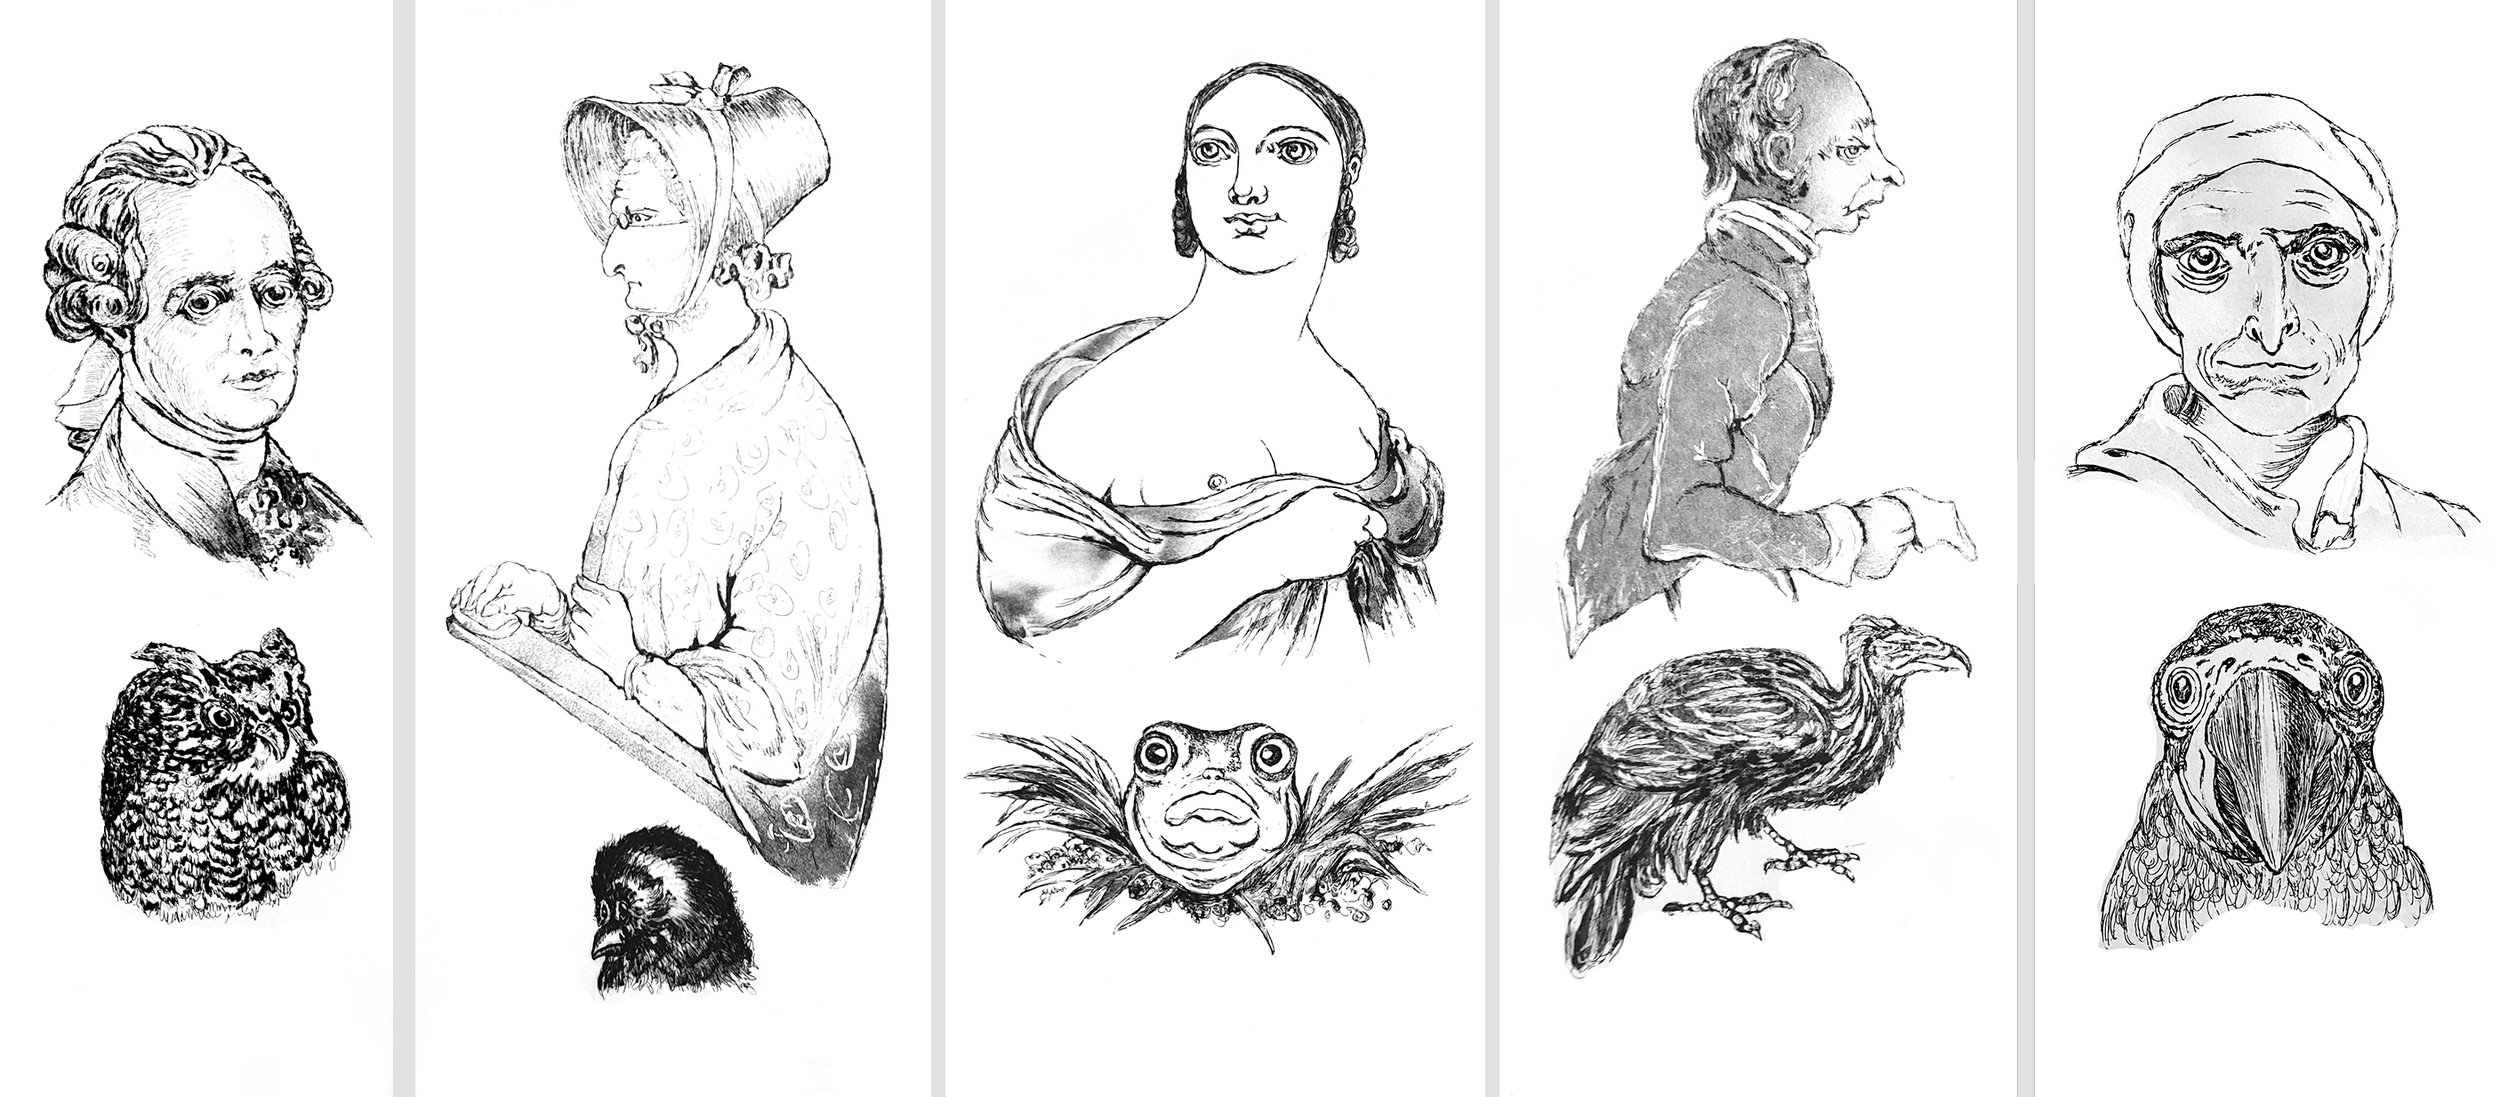 Human and animal resemblance  Five copper-plate etchings each c. 45 x 20 cm.